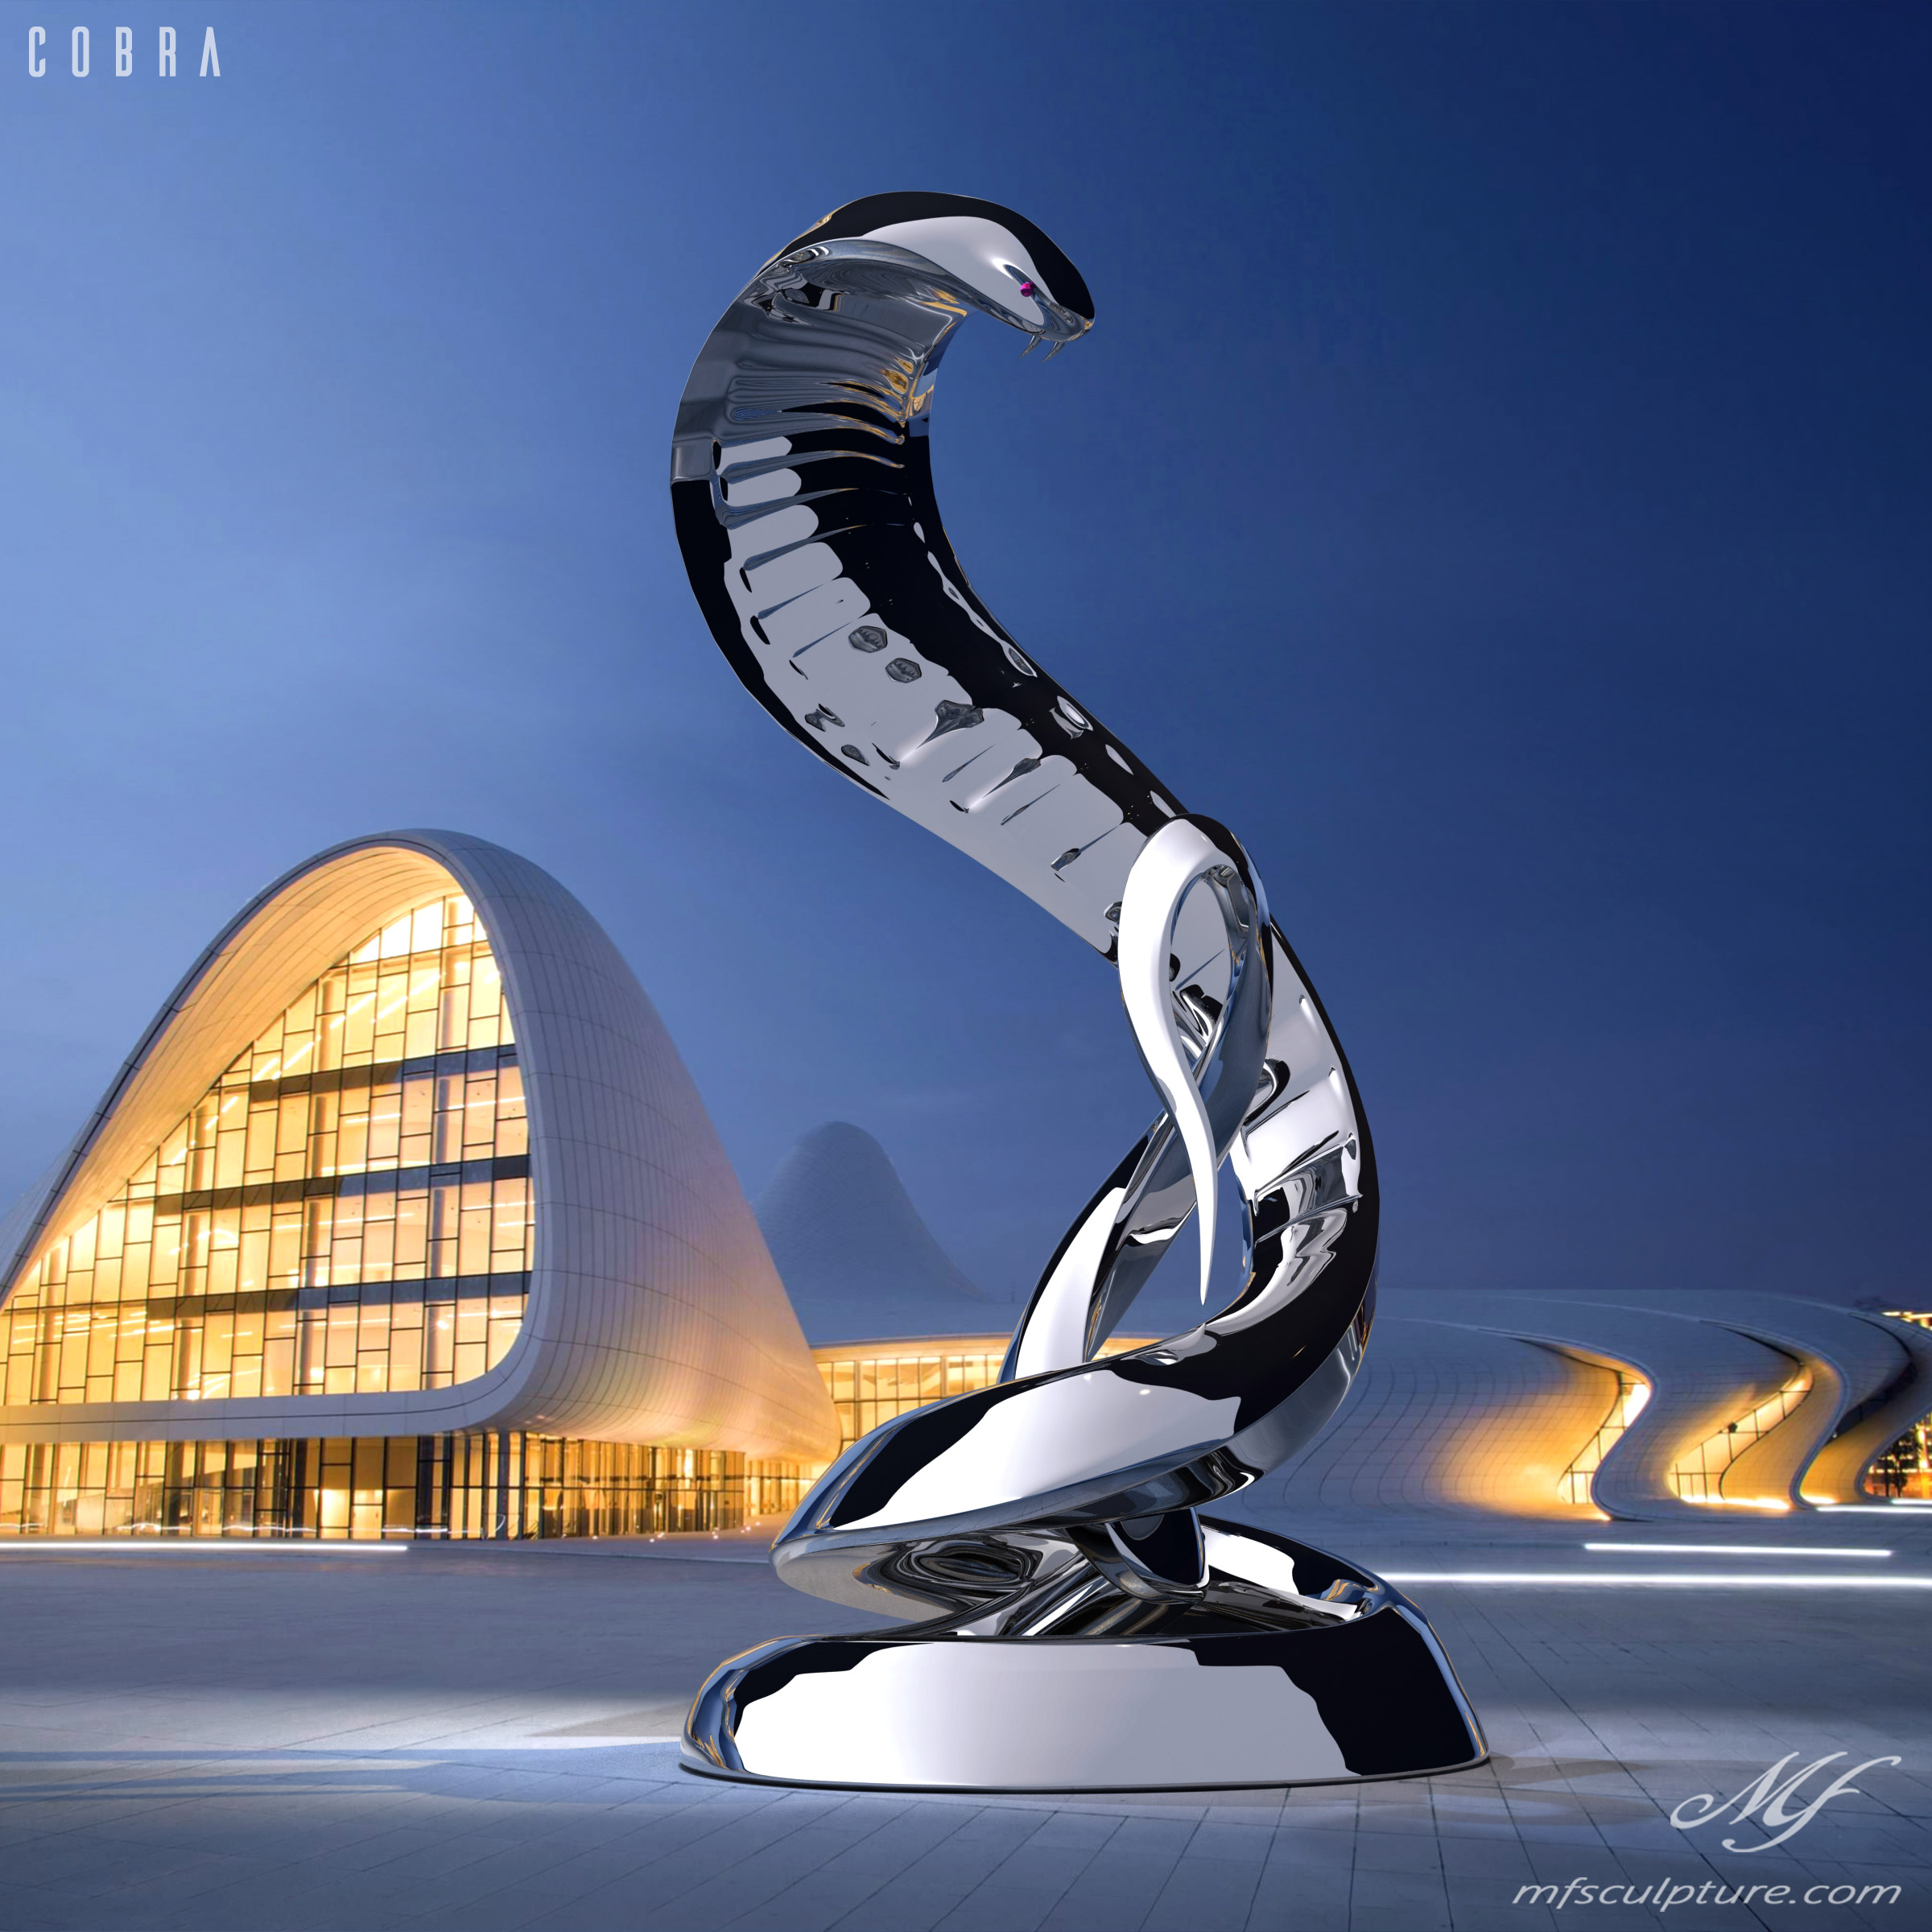 Contemporary Stainless Steel Cobra Sculpture Heydar Aliyev Centre Baku Azerbaijan